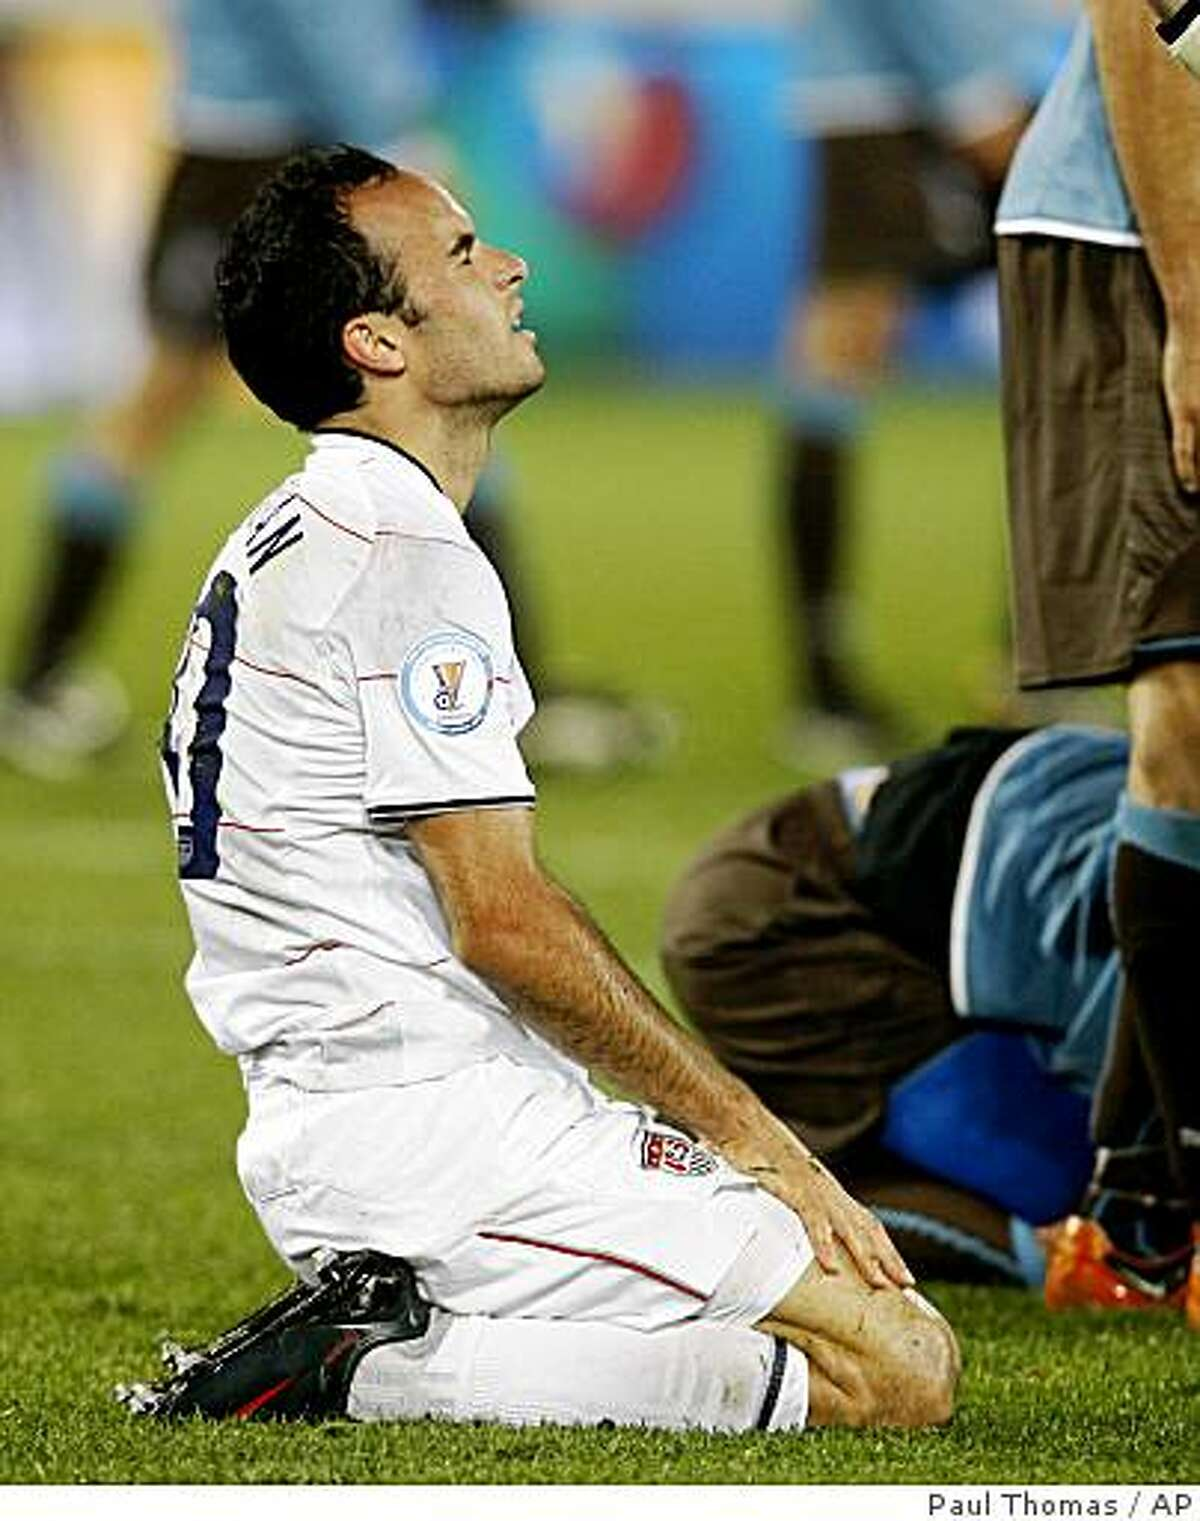 USA's Landon Donovan reacts after missing a scoring chance against Italy during their Confederations Cup Group B soccer match at Loftus Versfeld Stadium in Pretoria, South Africa, Monday, June 15, 2009. Italy won 3-1. (AP Photo/Paul Thomas)